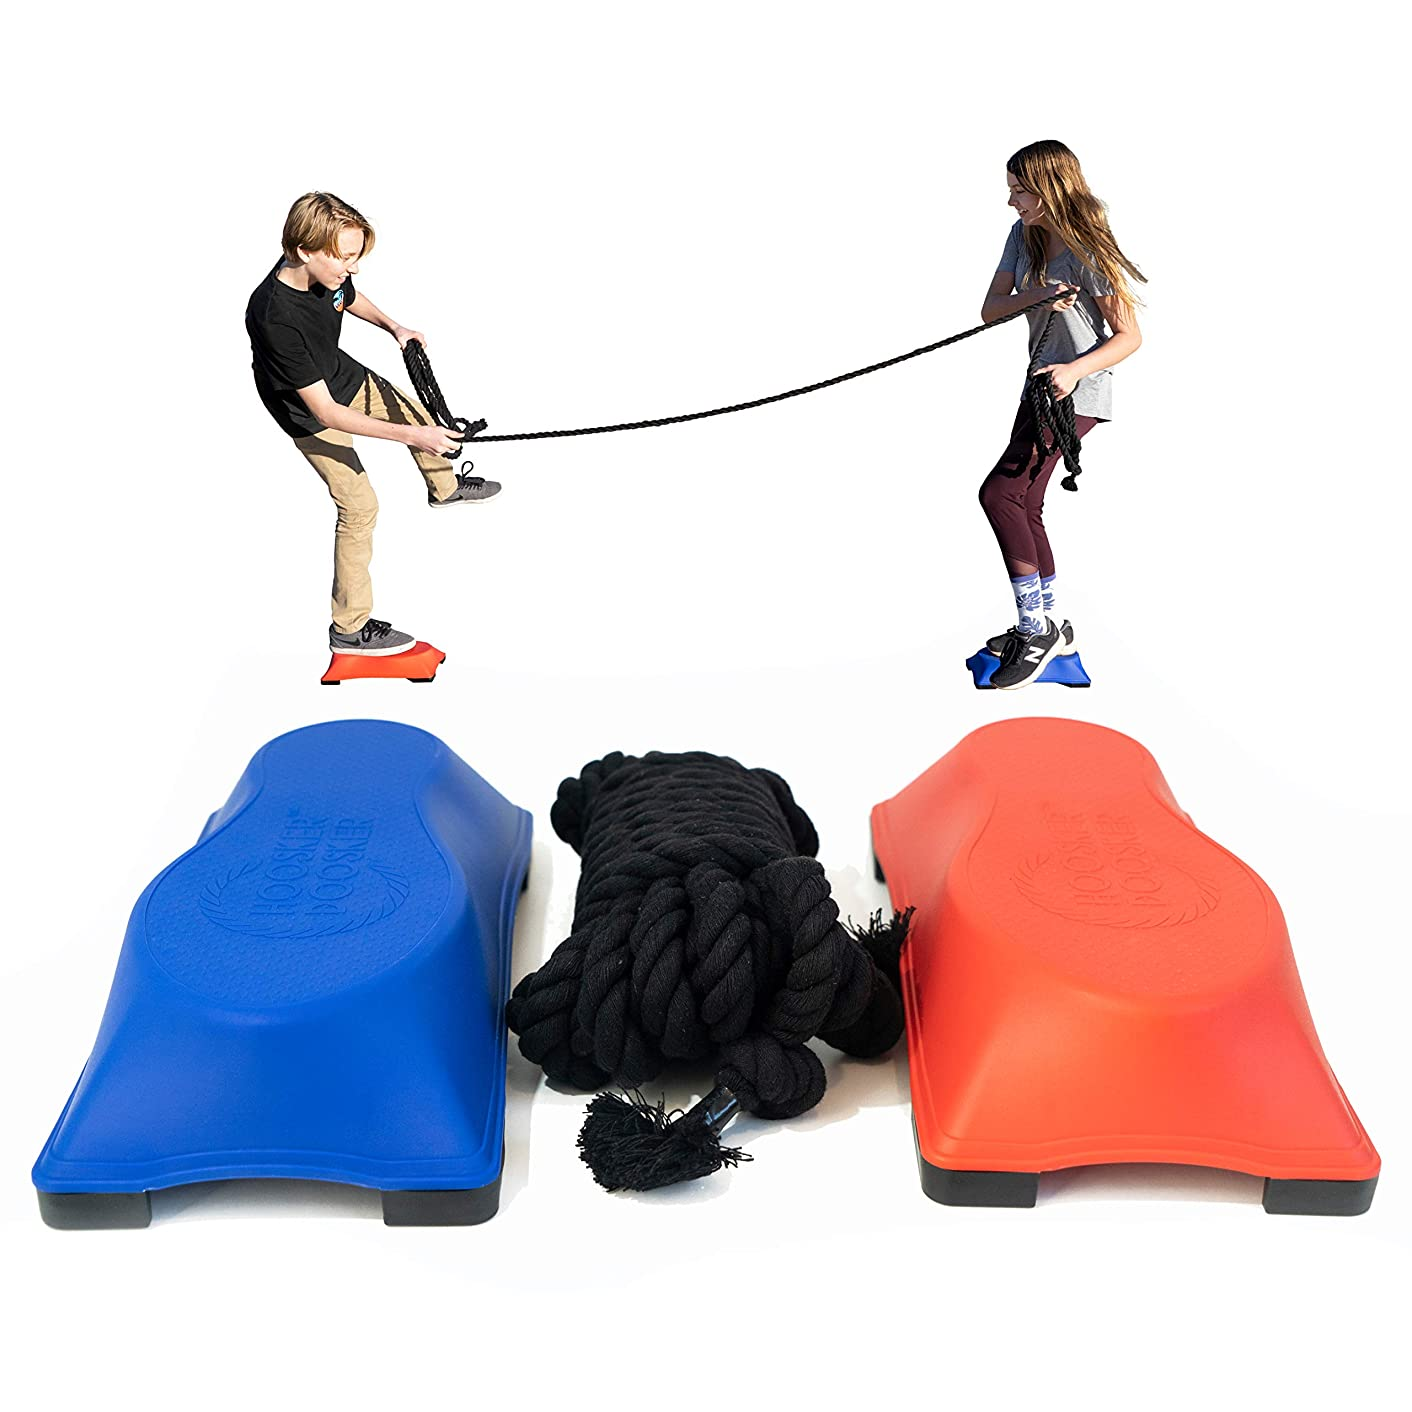 Just Jump It Hoosker Doosker Tug of War - The Game of Balance and Skill